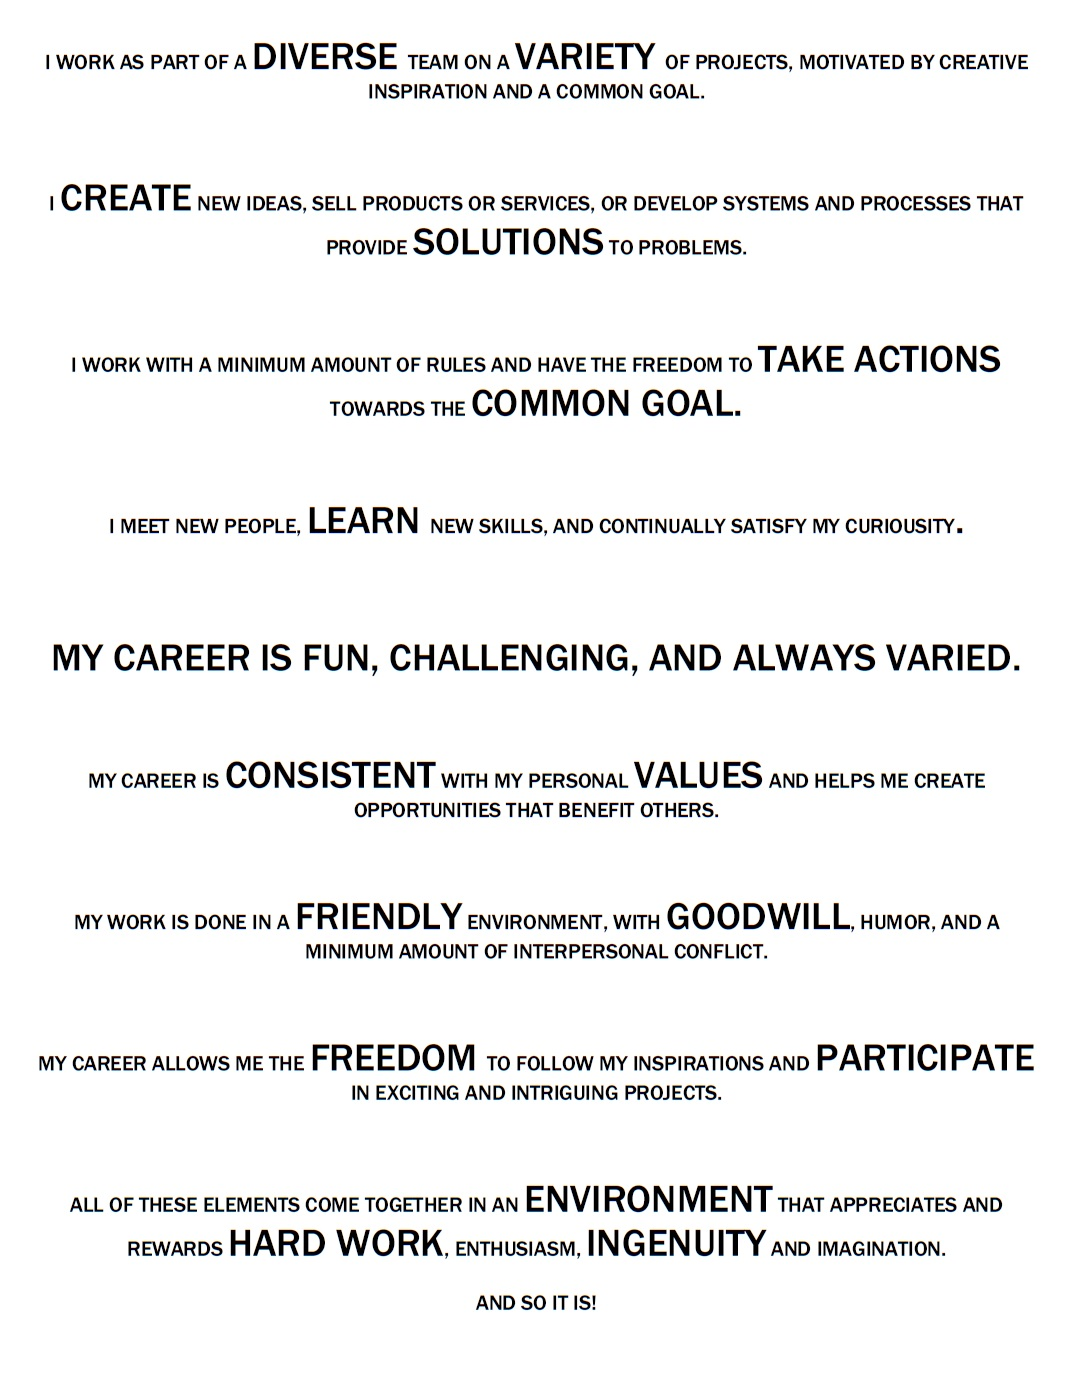 personal career vision statement examples